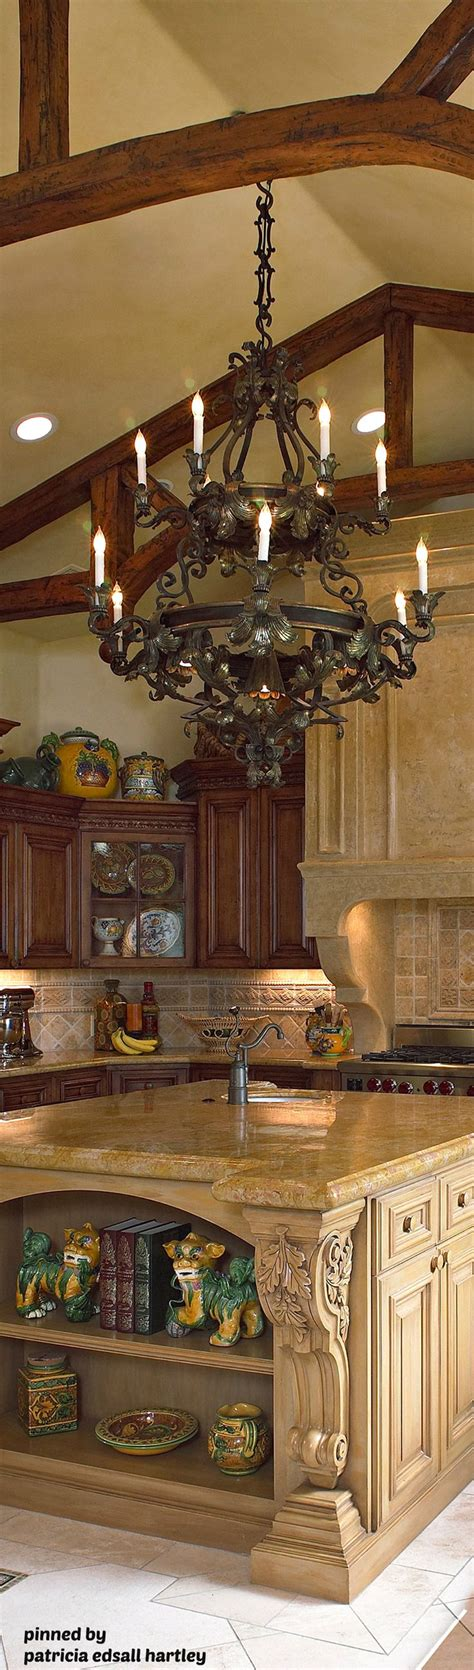 tuscan kitchen lighting the 25 best mediterranean kitchen ideas on pinterest